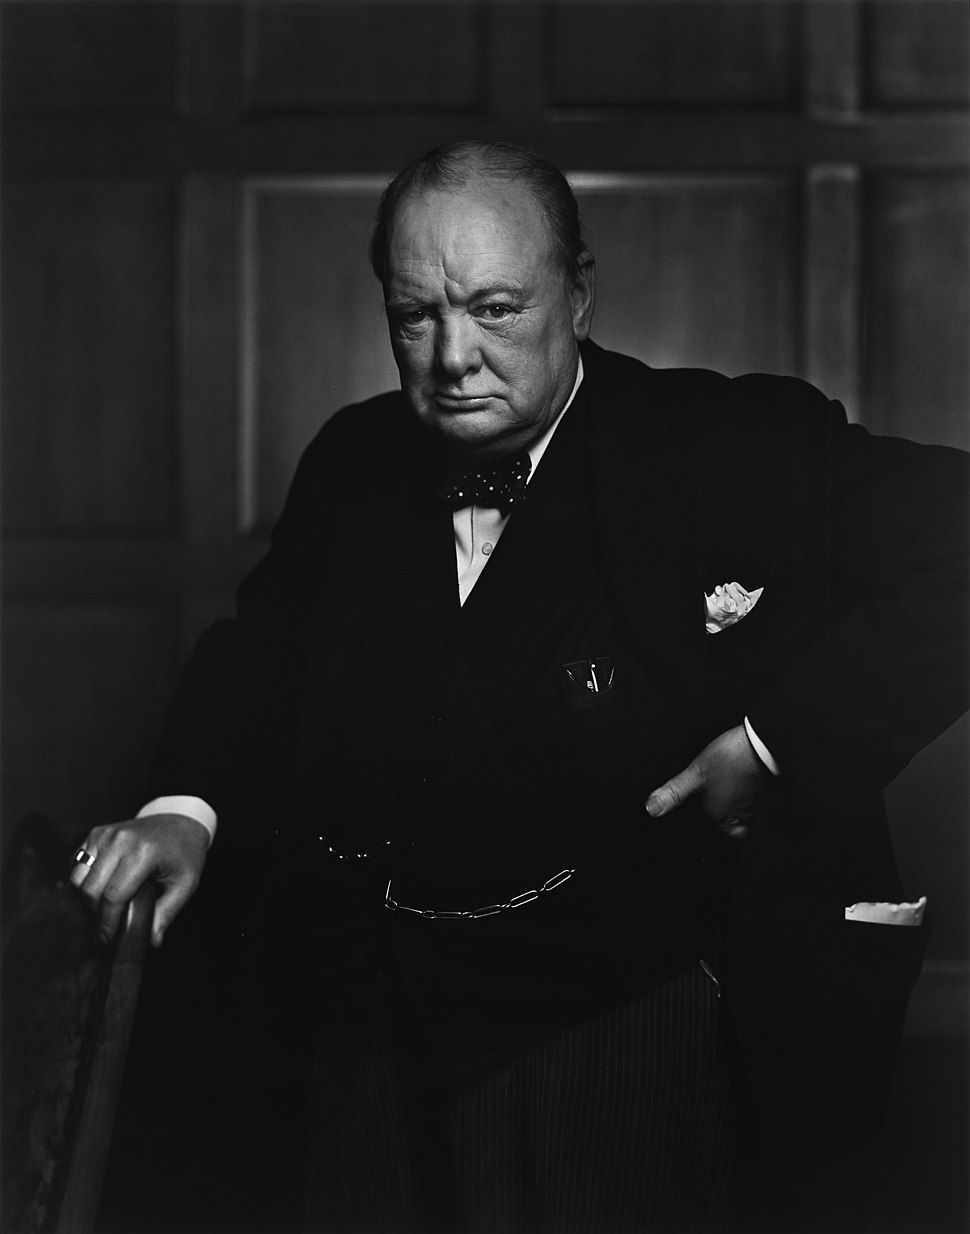 Churchill wearing a suit, standing and holding a chair